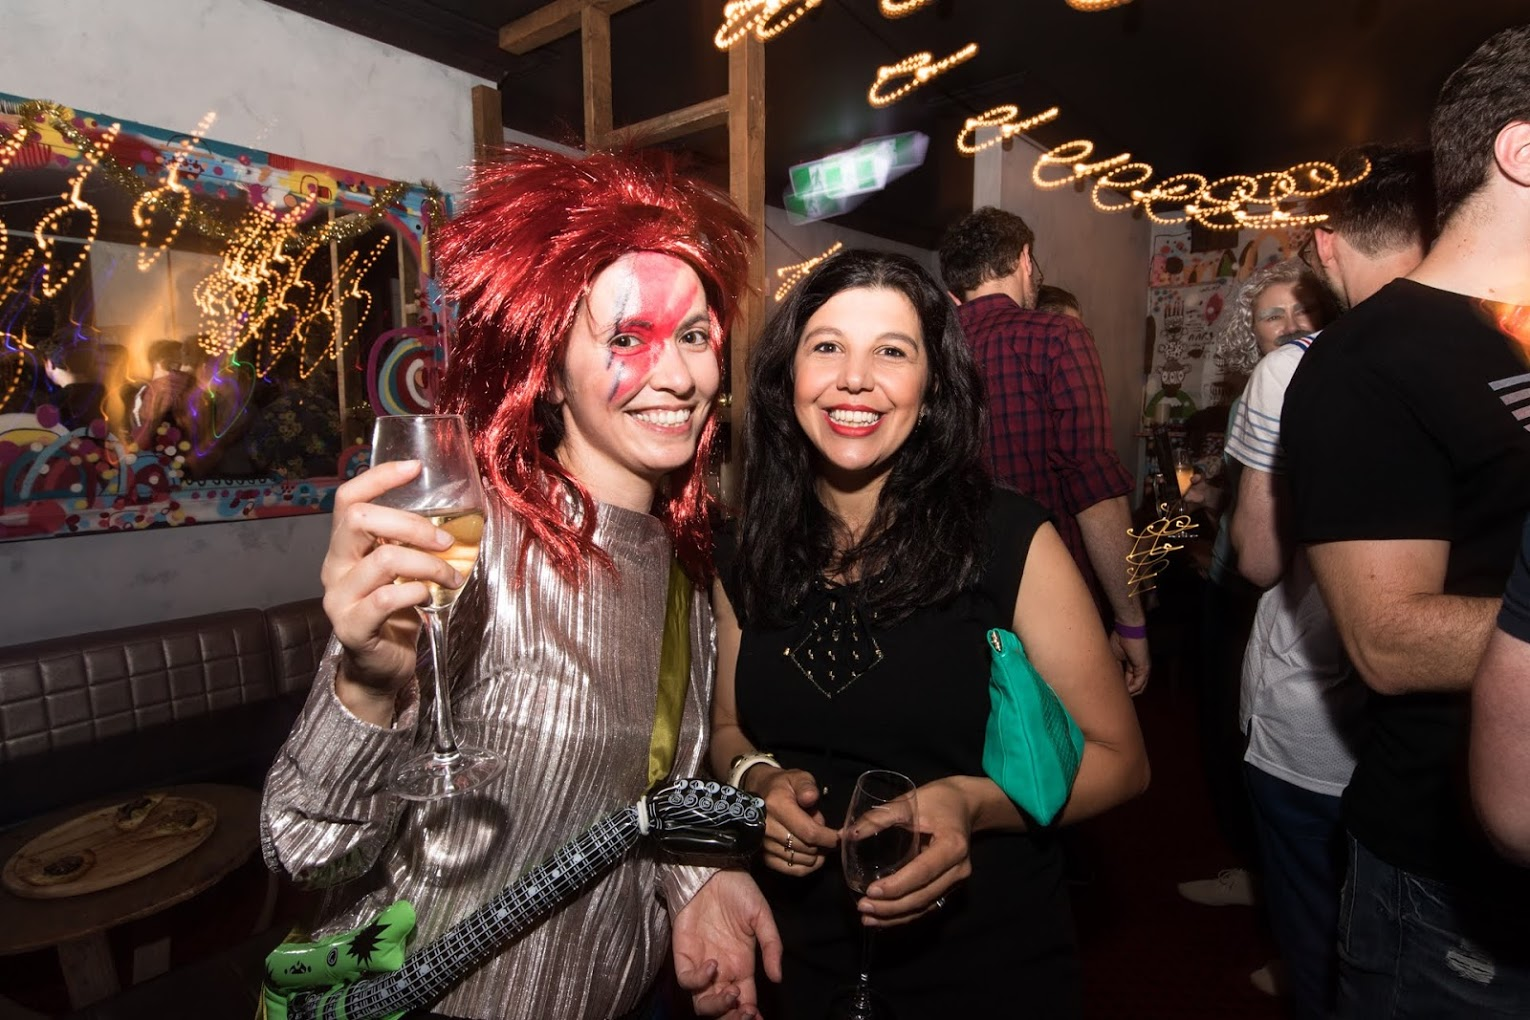 20171211_Flying Bark_Christmas Party_Photographer_Daniele Massacci_Web-6501.jpg